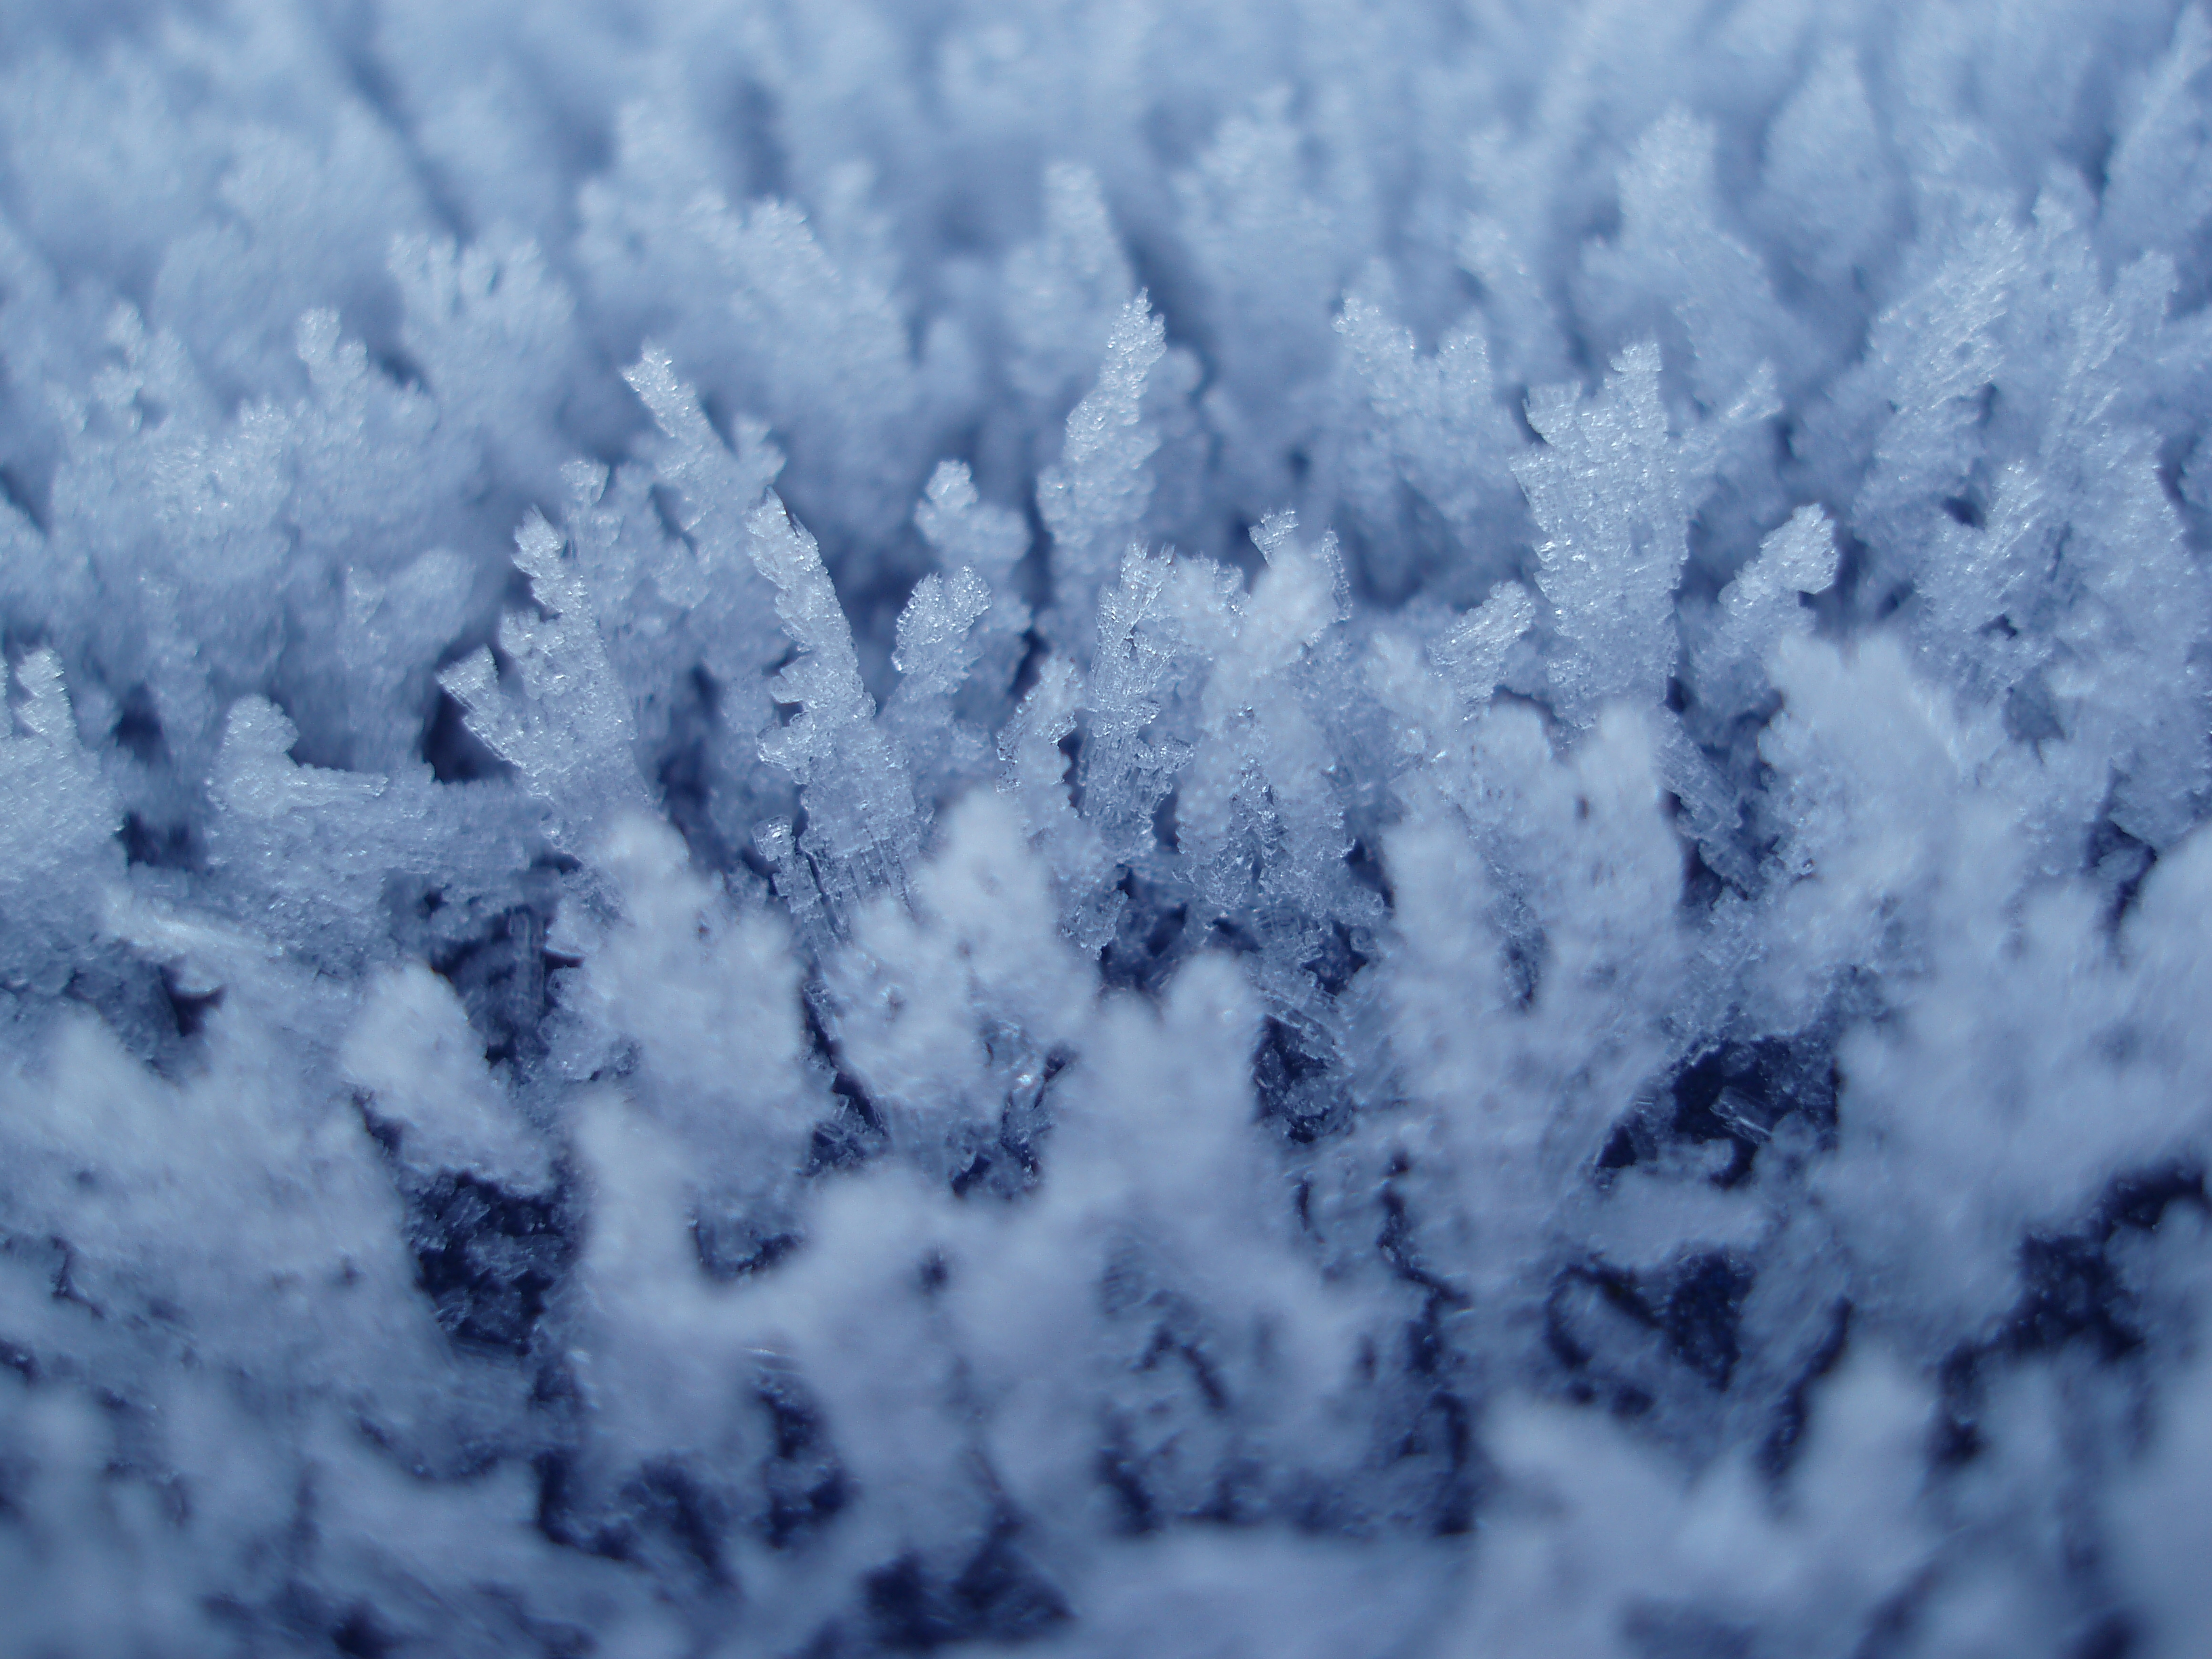 frosty spiky growths of winter hoar frost